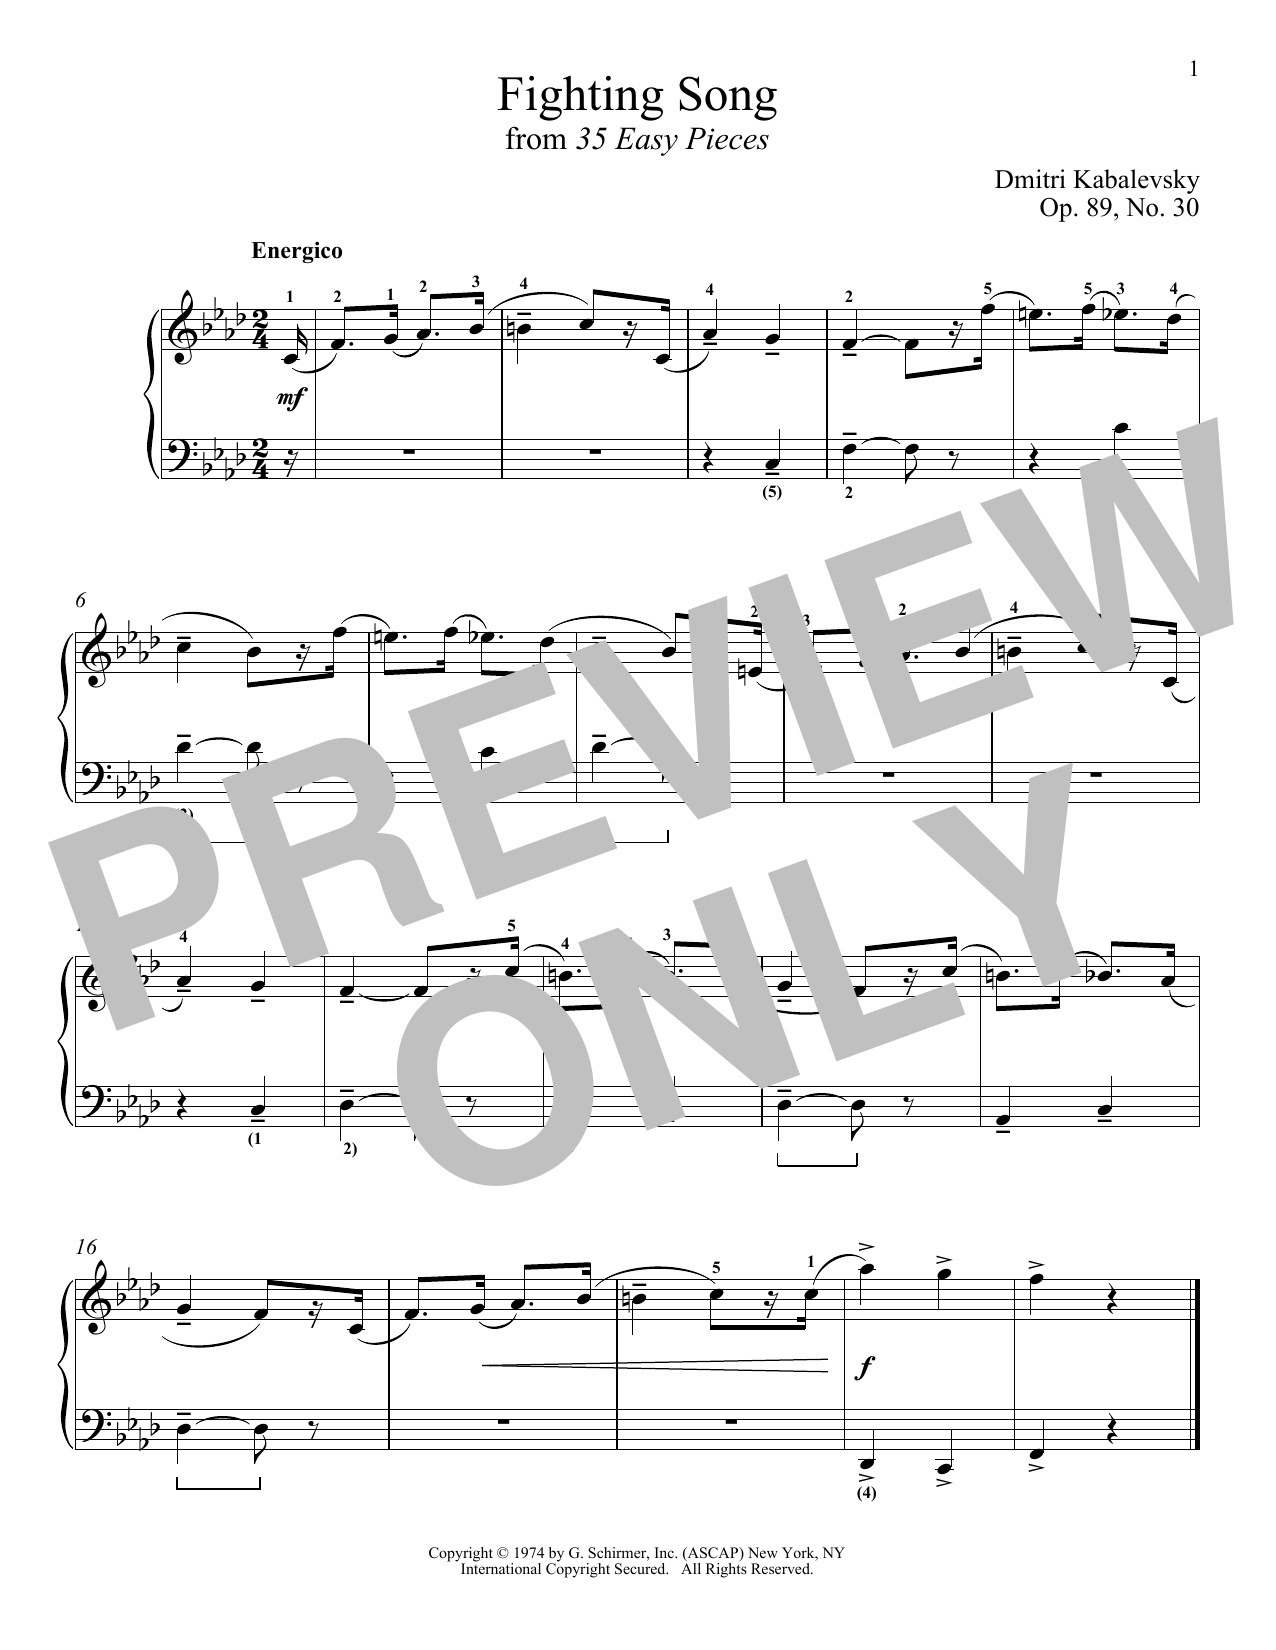 Dmitri Kabalevsky Fighting Song, Op. 89, No. 30 sheet music notes and chords. Download Printable PDF.